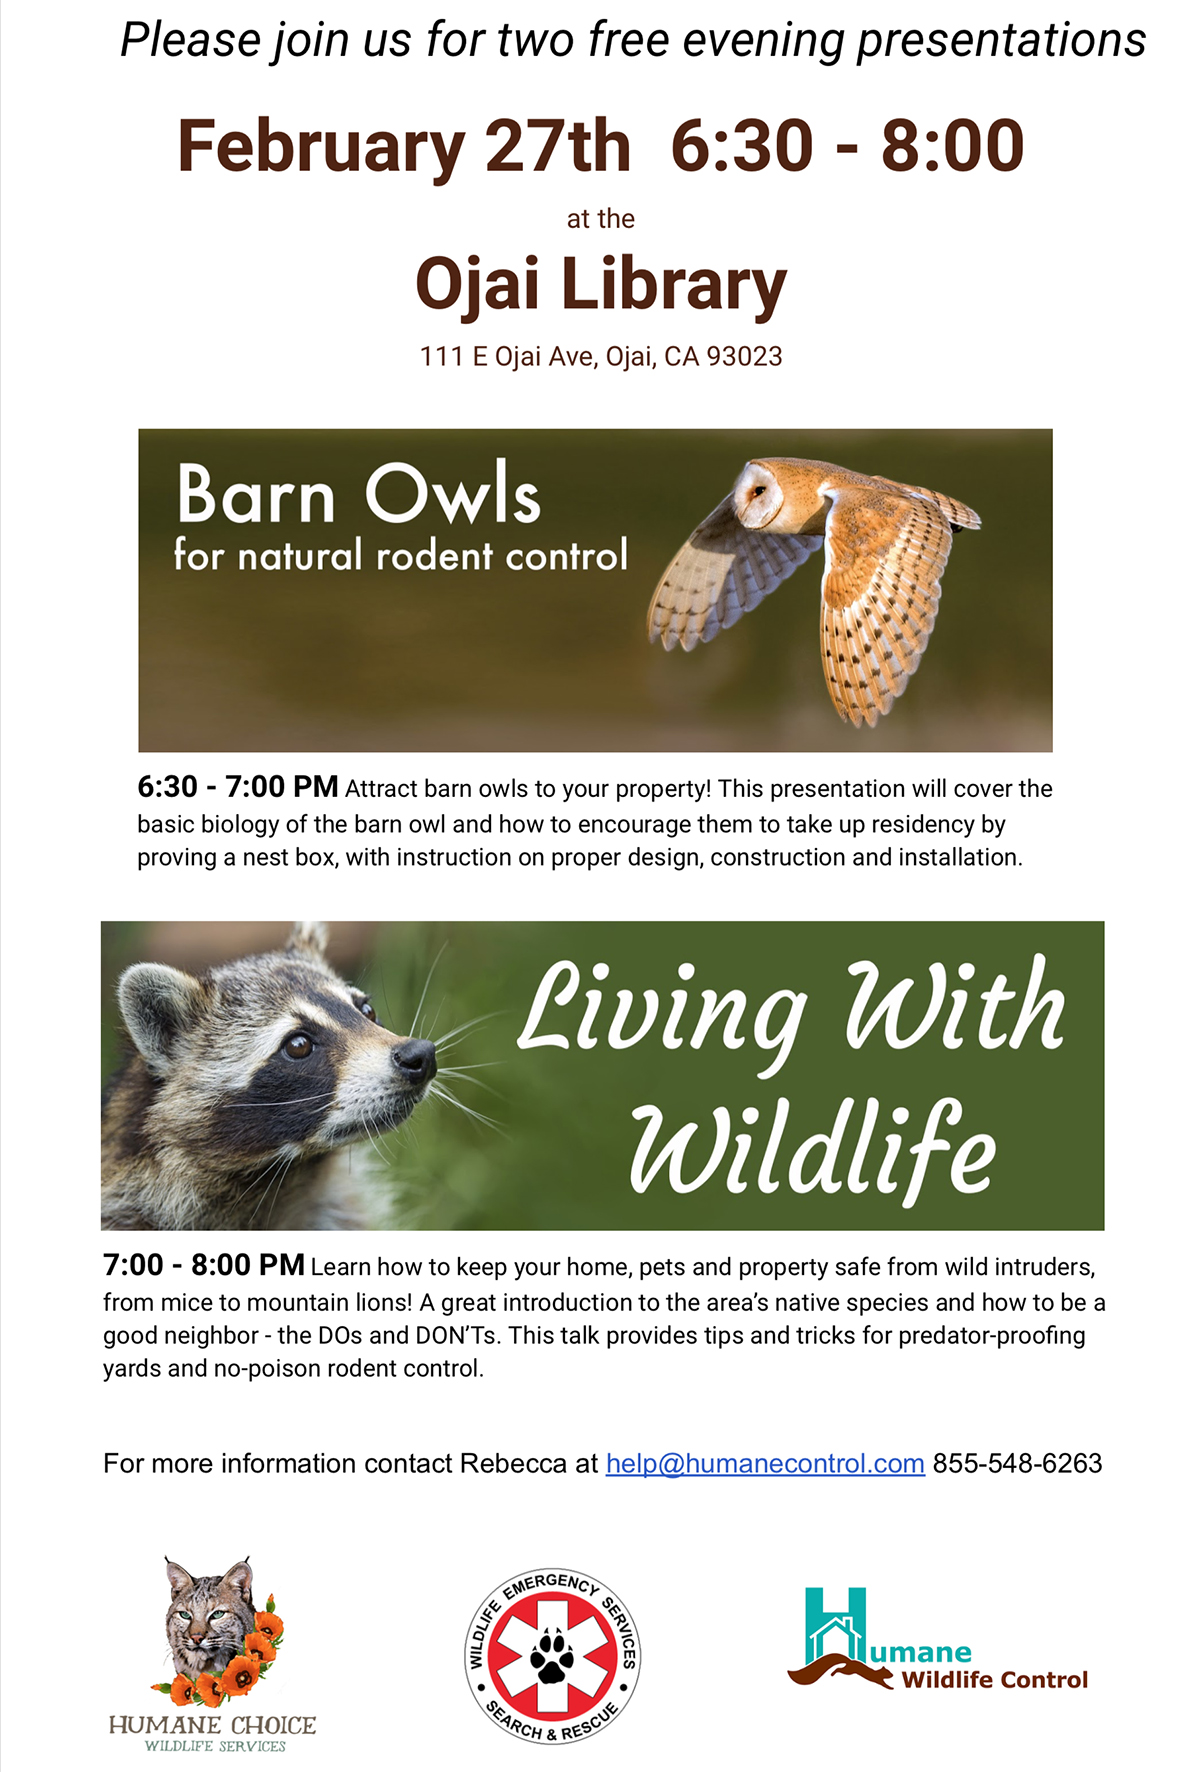 Living w/Wildlife & Barn Owls, Rodent Control Flyer